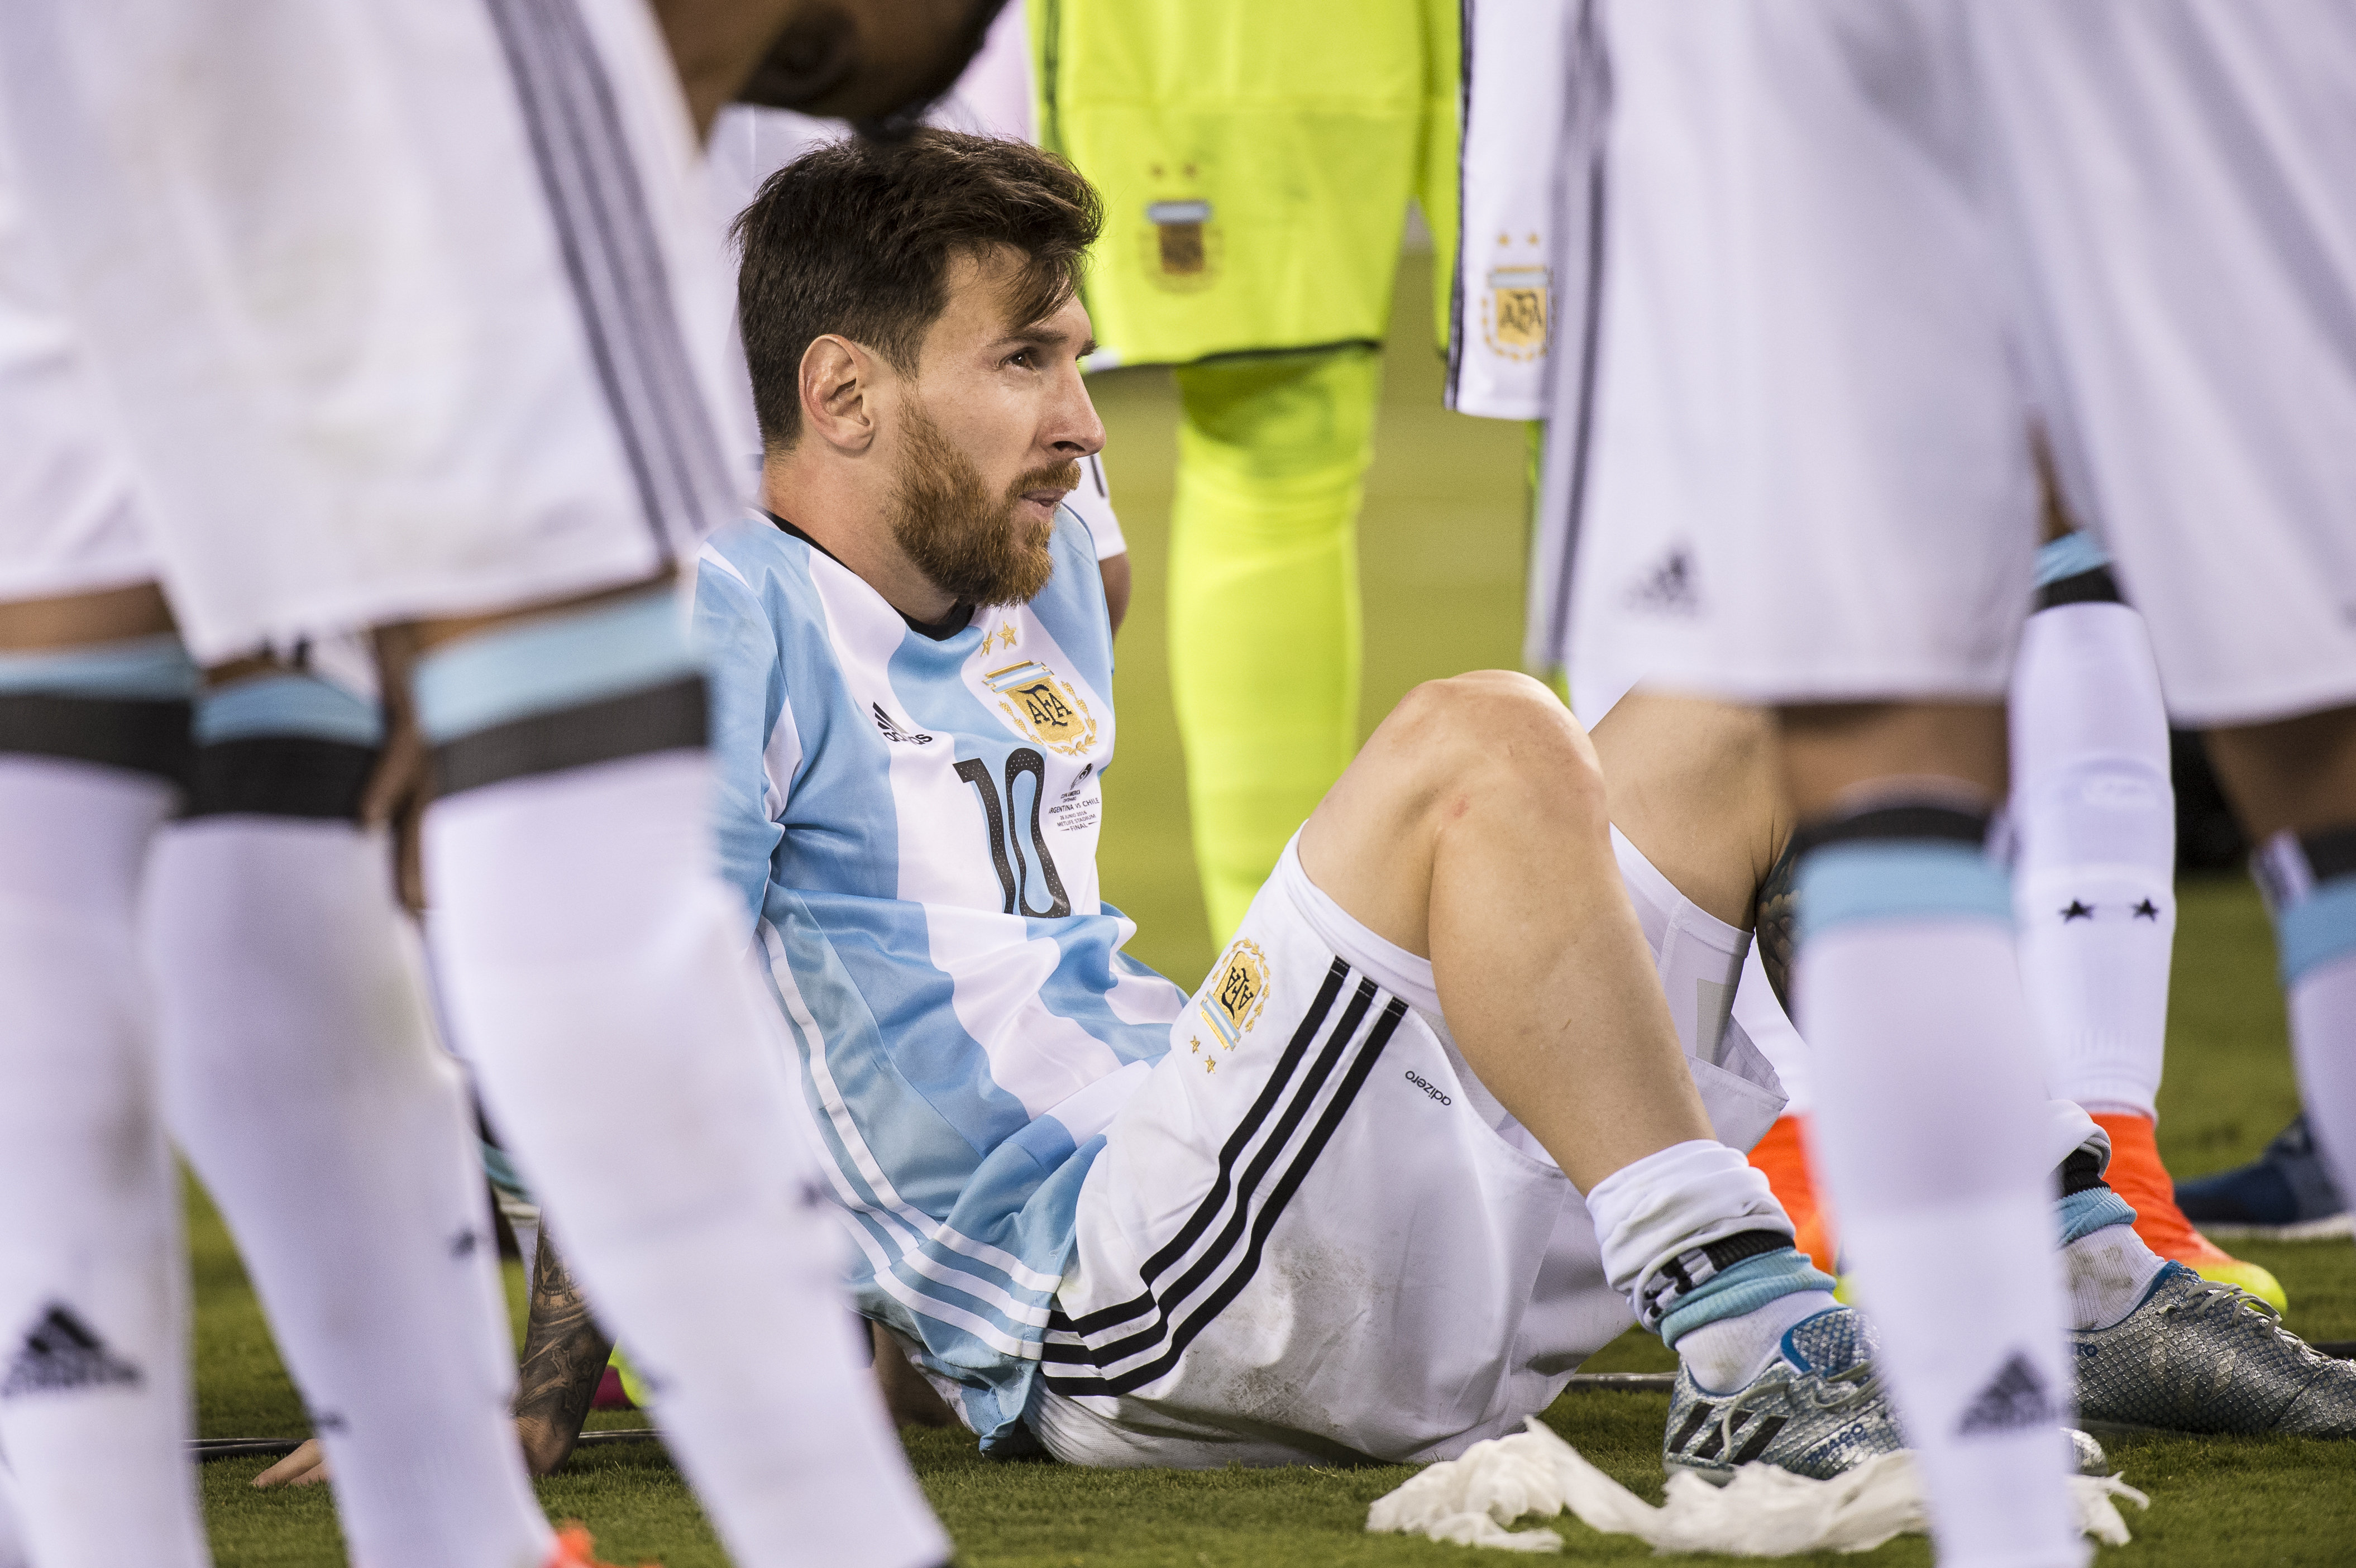 Messi after the Copa America final loss. Image: PA Images